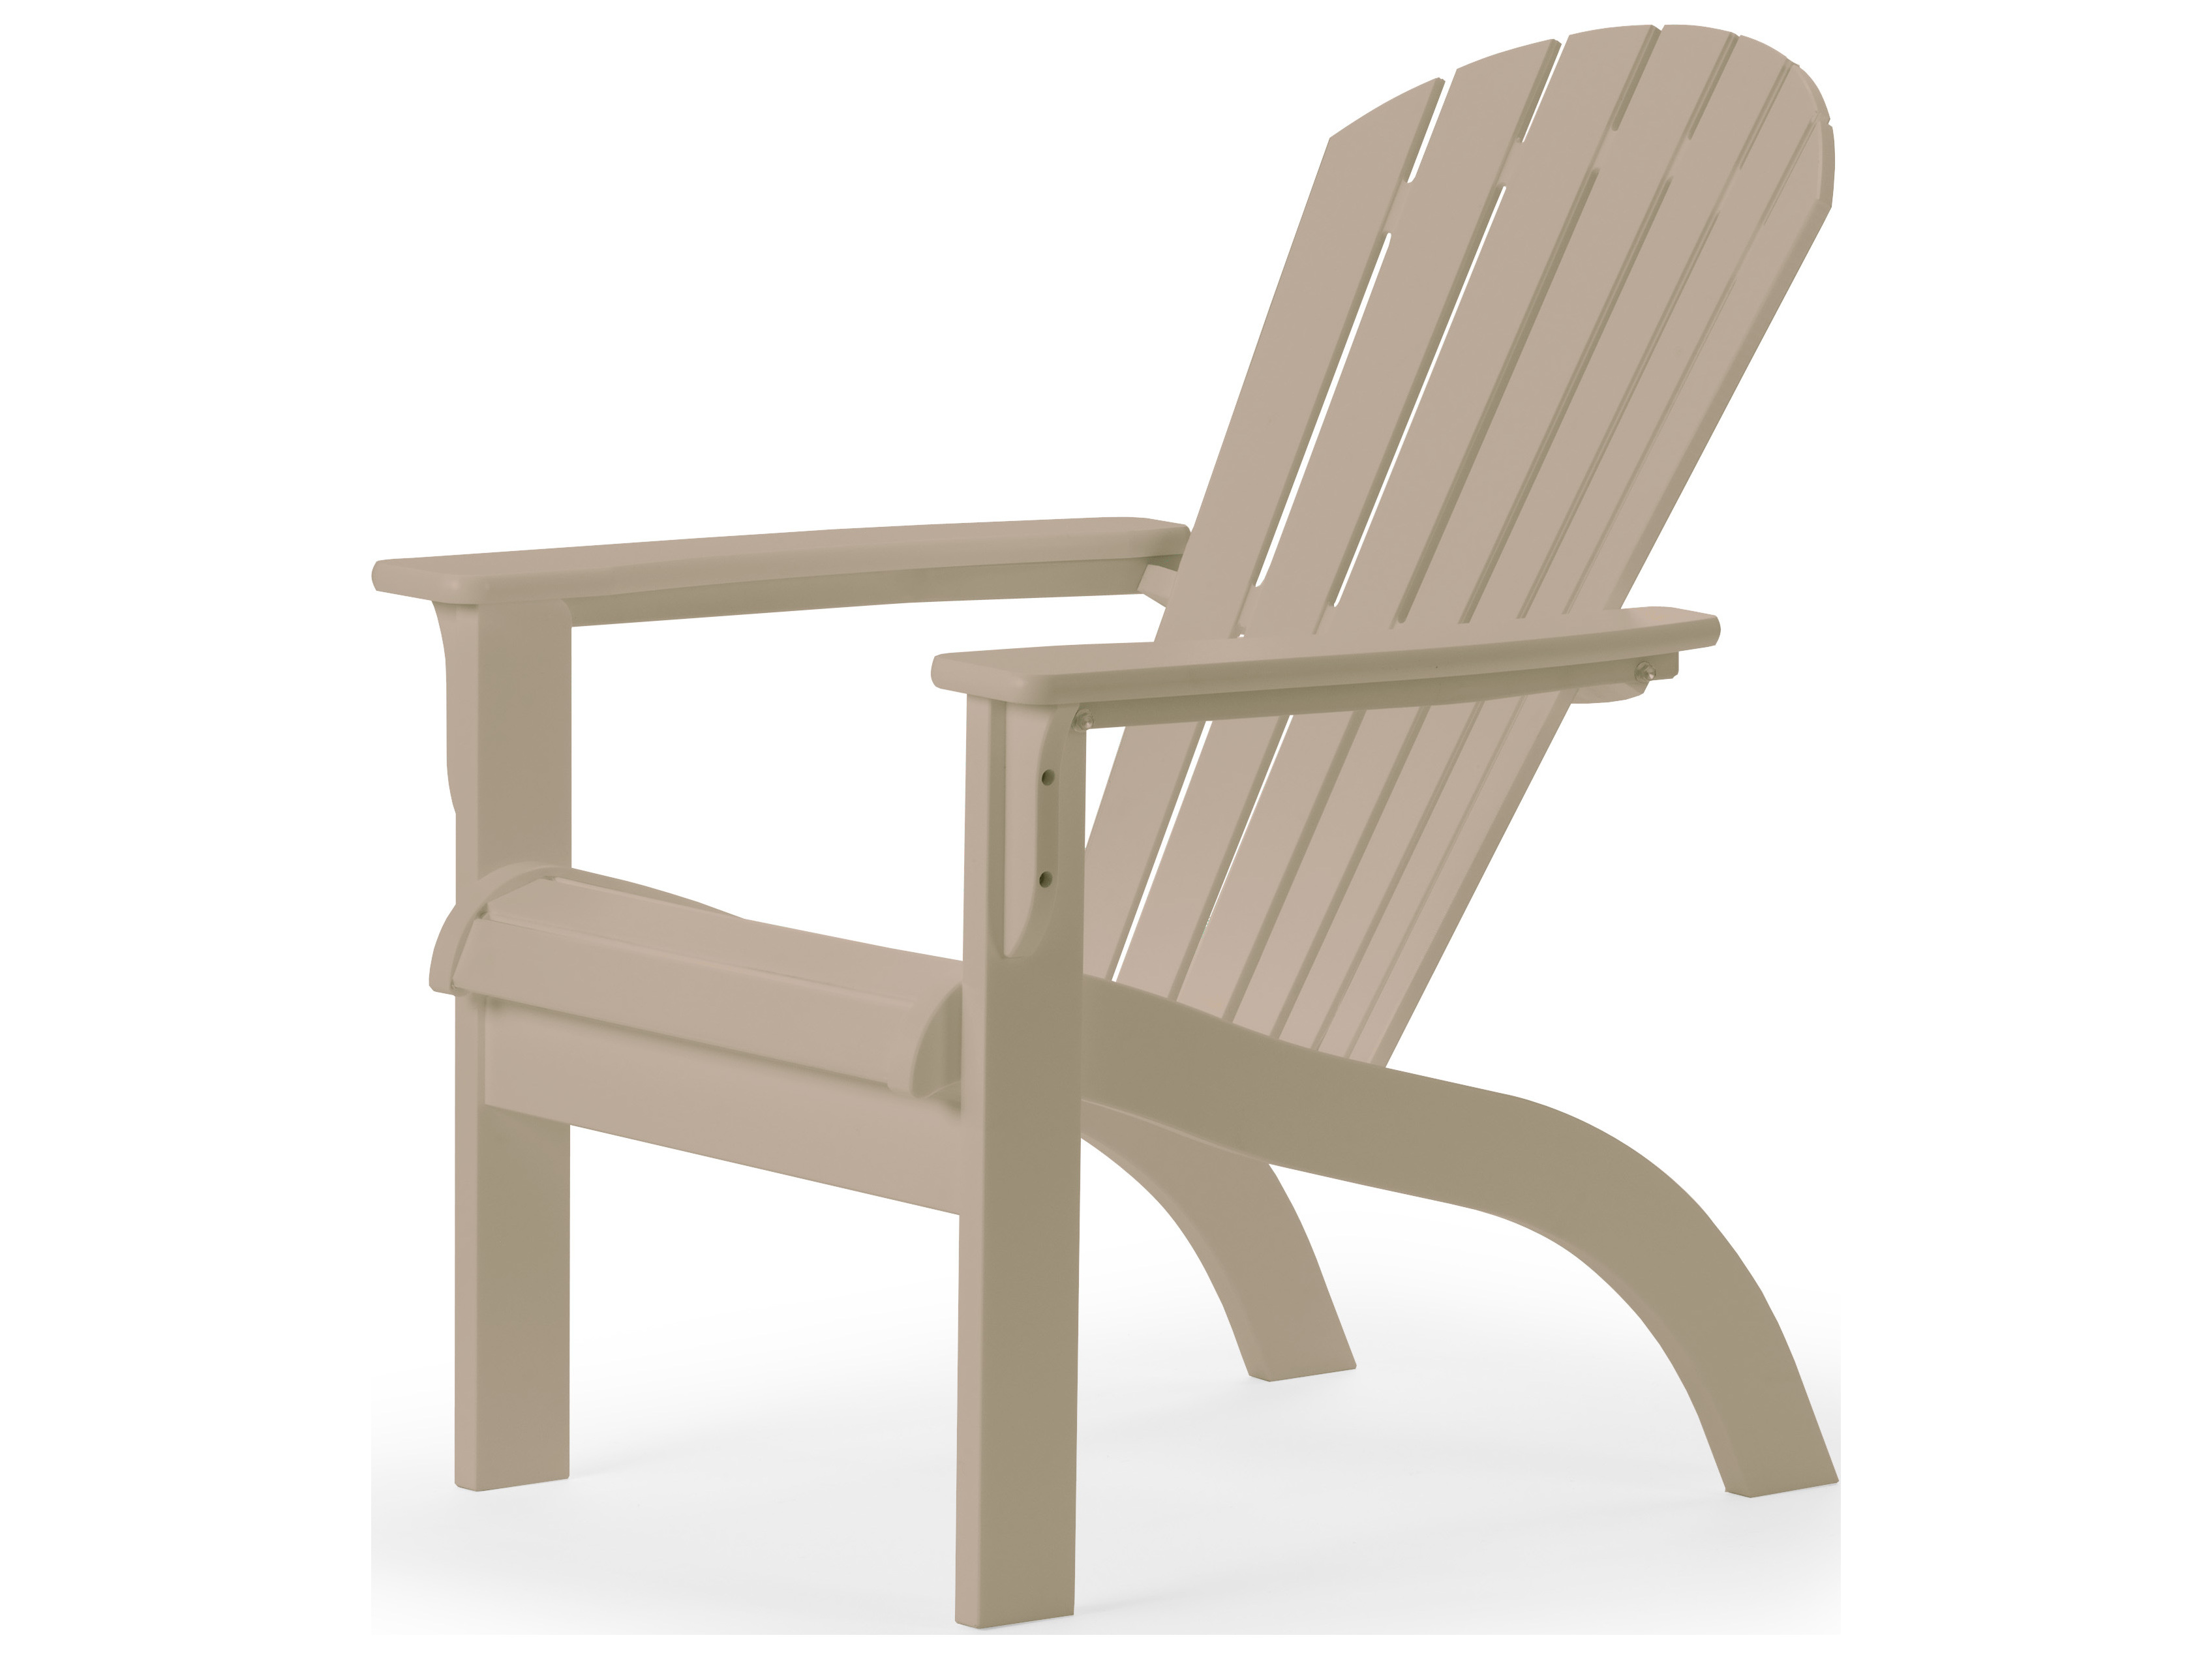 View  sc 1 st  PatioLiving & Telescope Casual Adirondack MGP Recycled Plastic Lounge Chair | 8A10